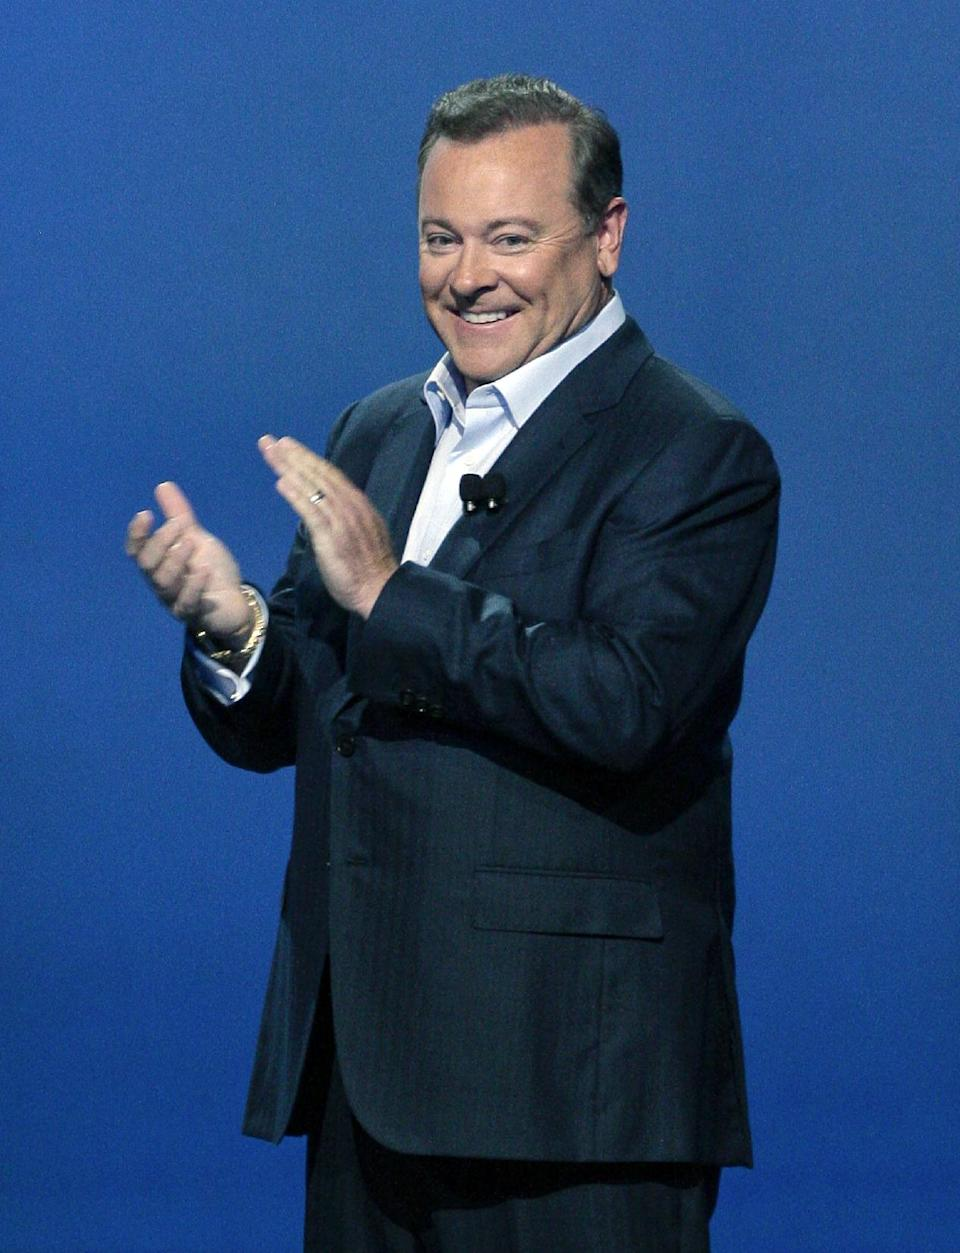 Jack Tretton, President and CEO of Sony Computer Entertainment America, applauds during the Sony Electronic Entertainment Expo (E3) news conference in Los Angeles, Monday, June 4, 2012. (AP Photo/Jason Redmond)